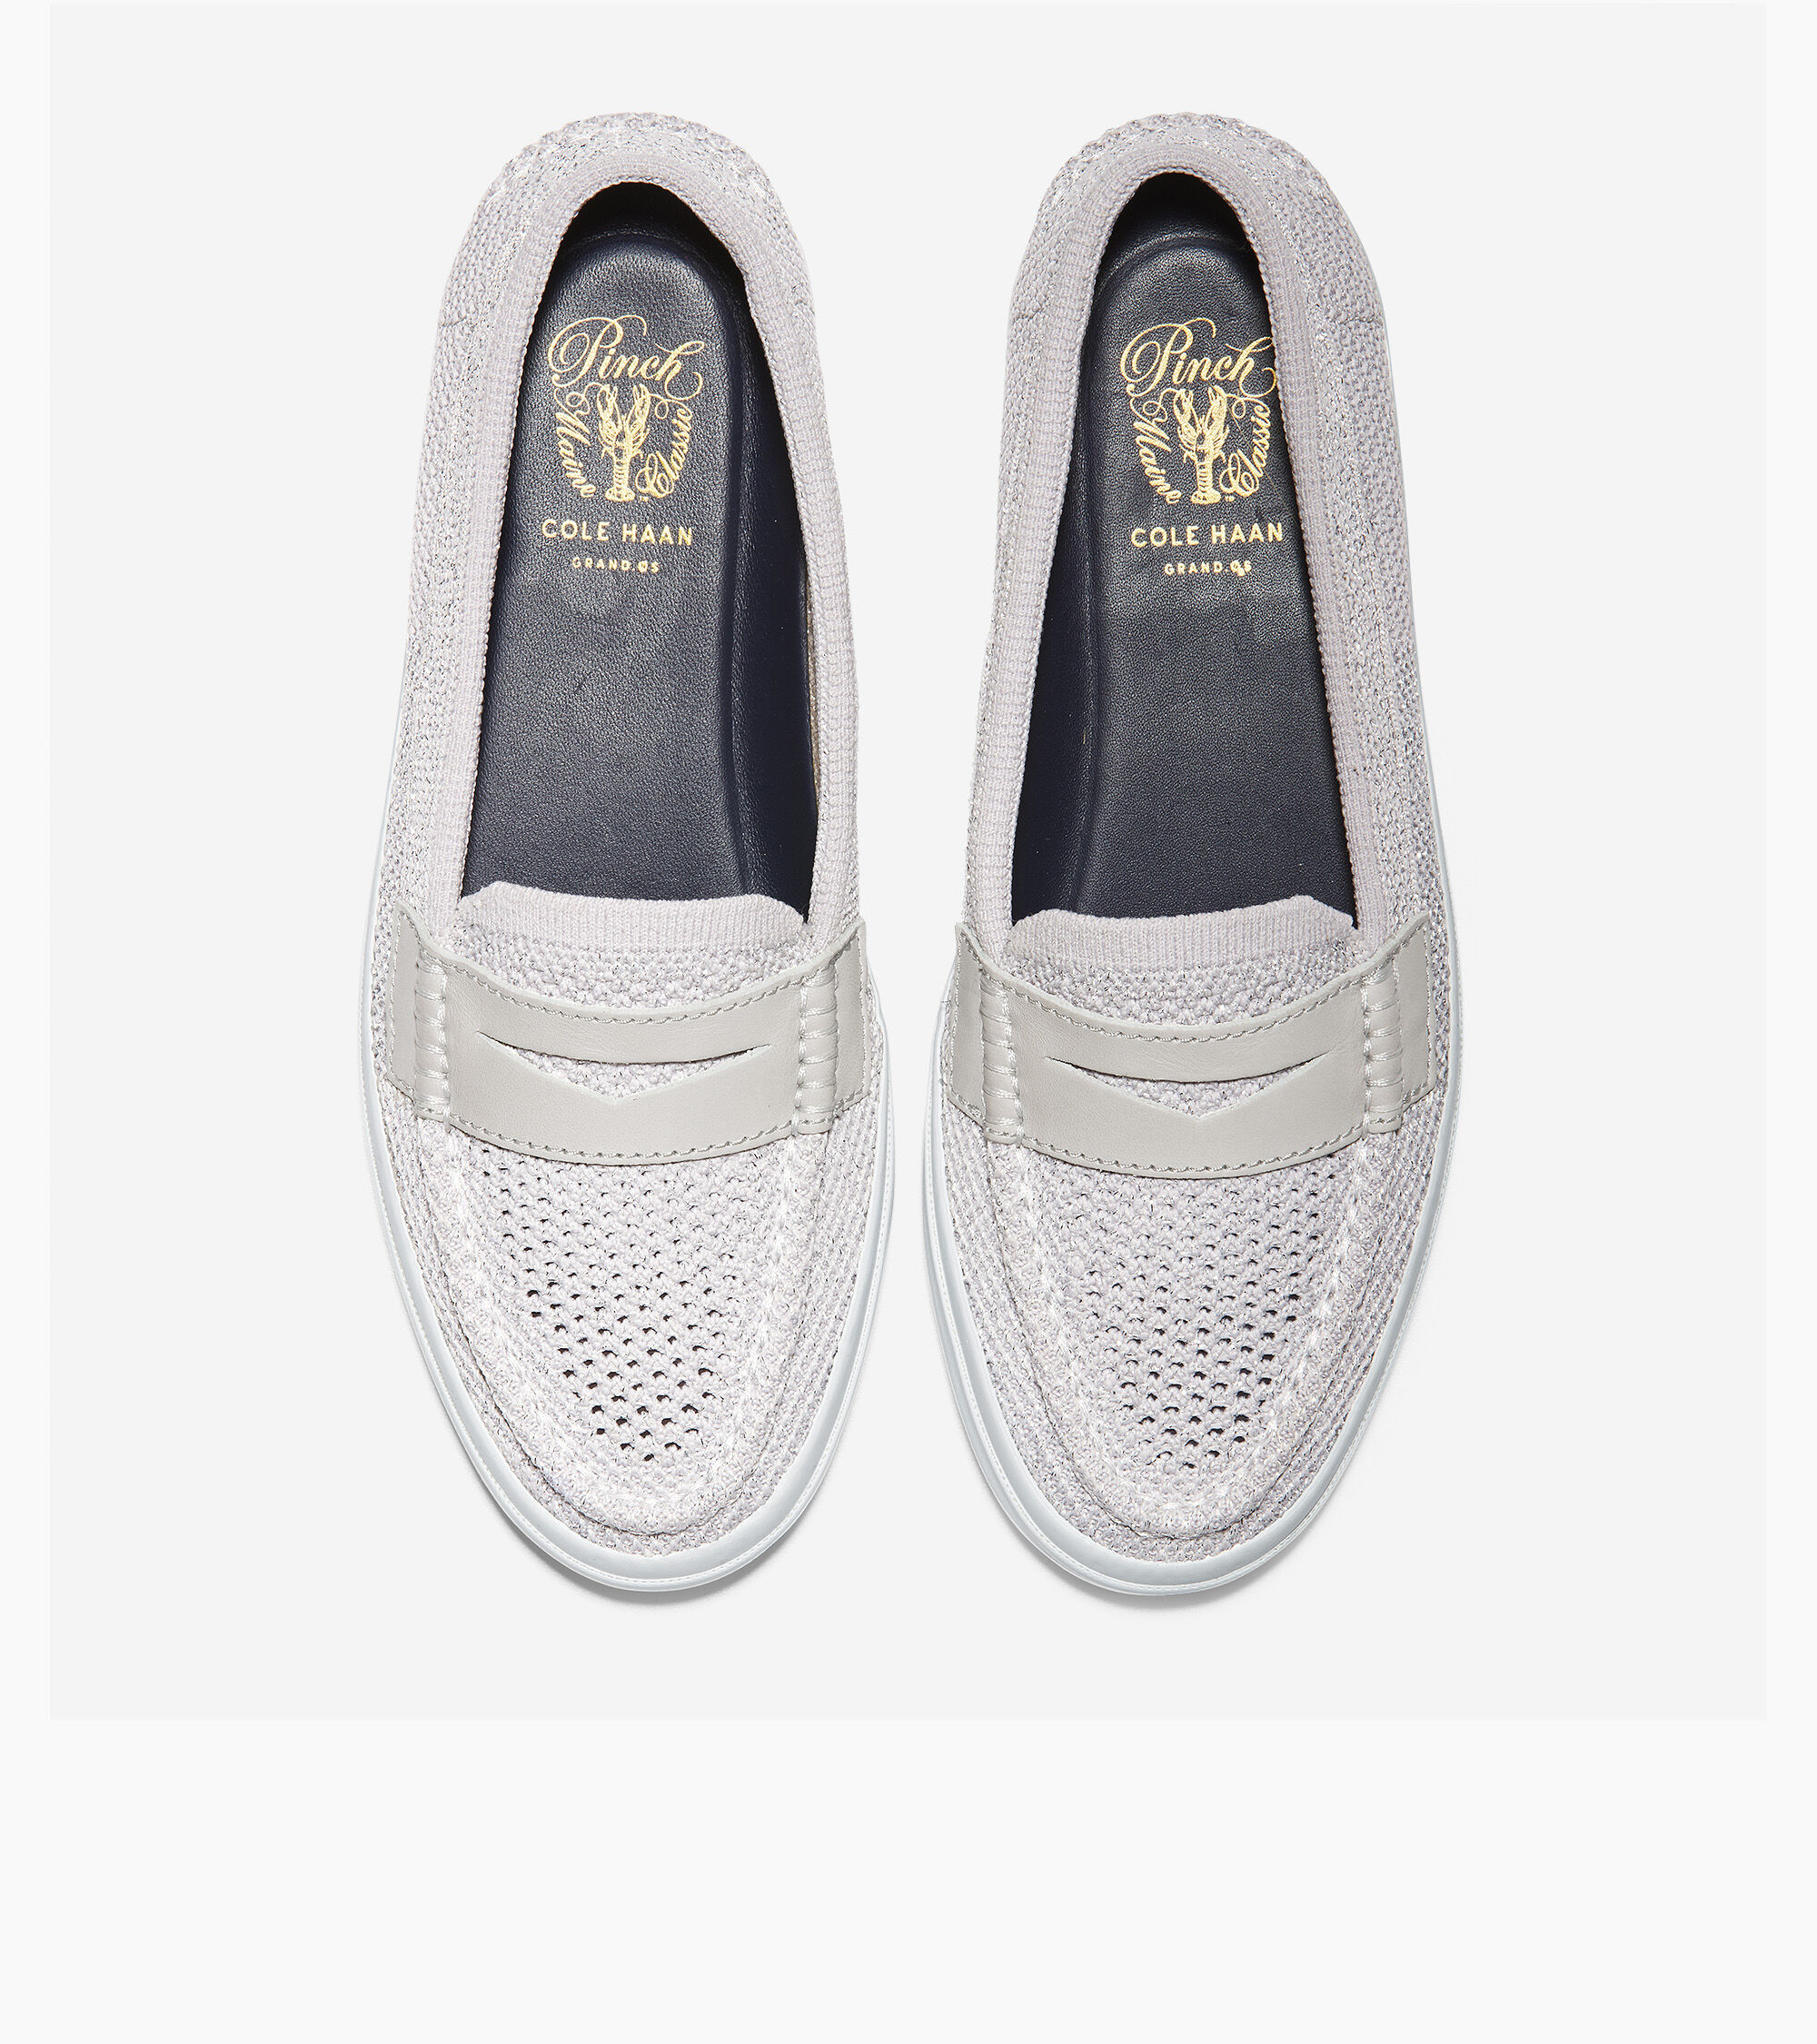 0f85315fd58 Women s Pinch Weekender LX Loafers with Stitchlite in Metallic ...